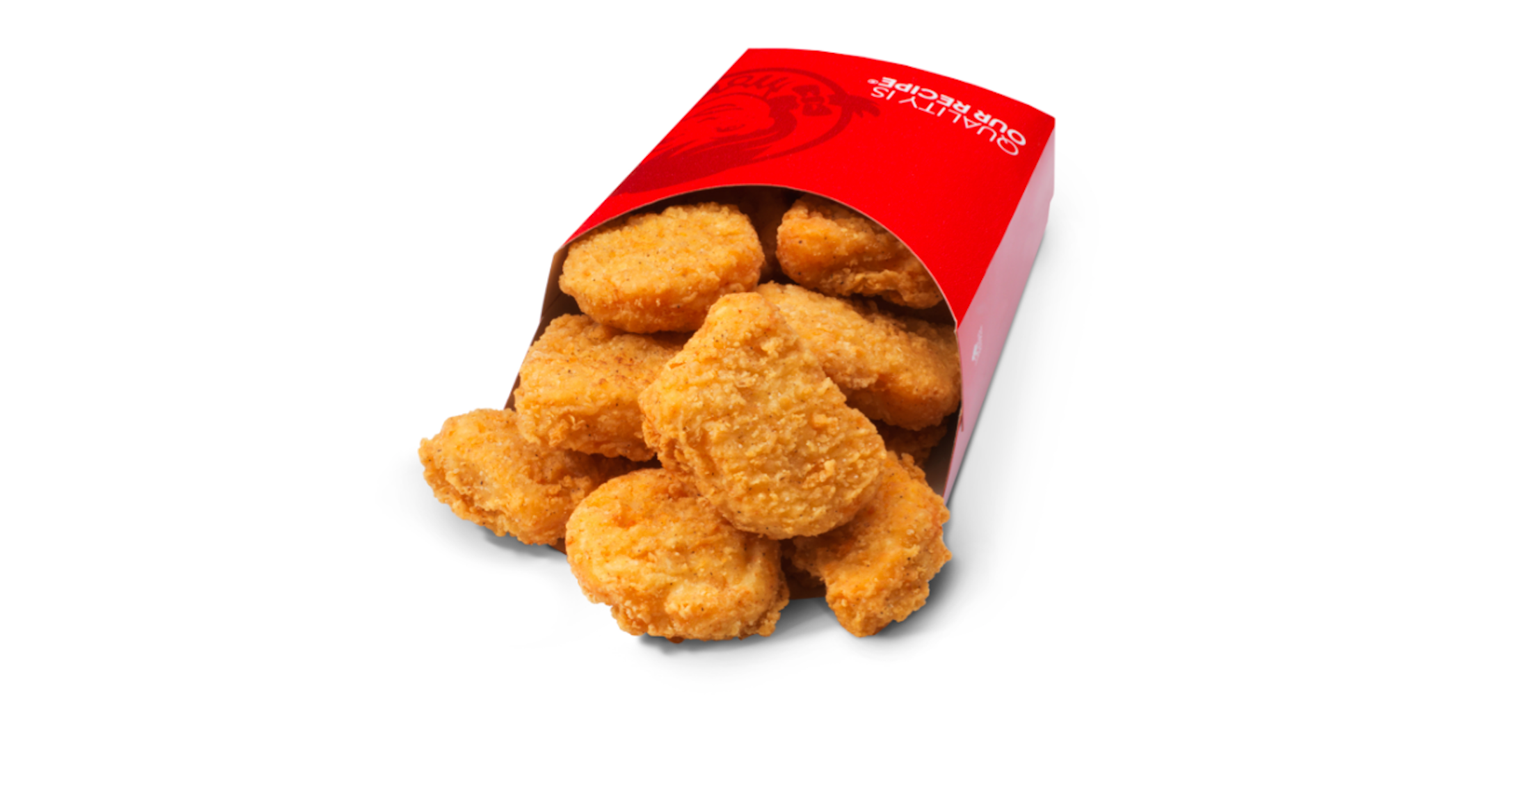 mcdonalds and wendys operations management Wendy's said wednesday that mcdonald's tests of fresh beef didn't have   brought more awareness and credibility to wendy's business, which.